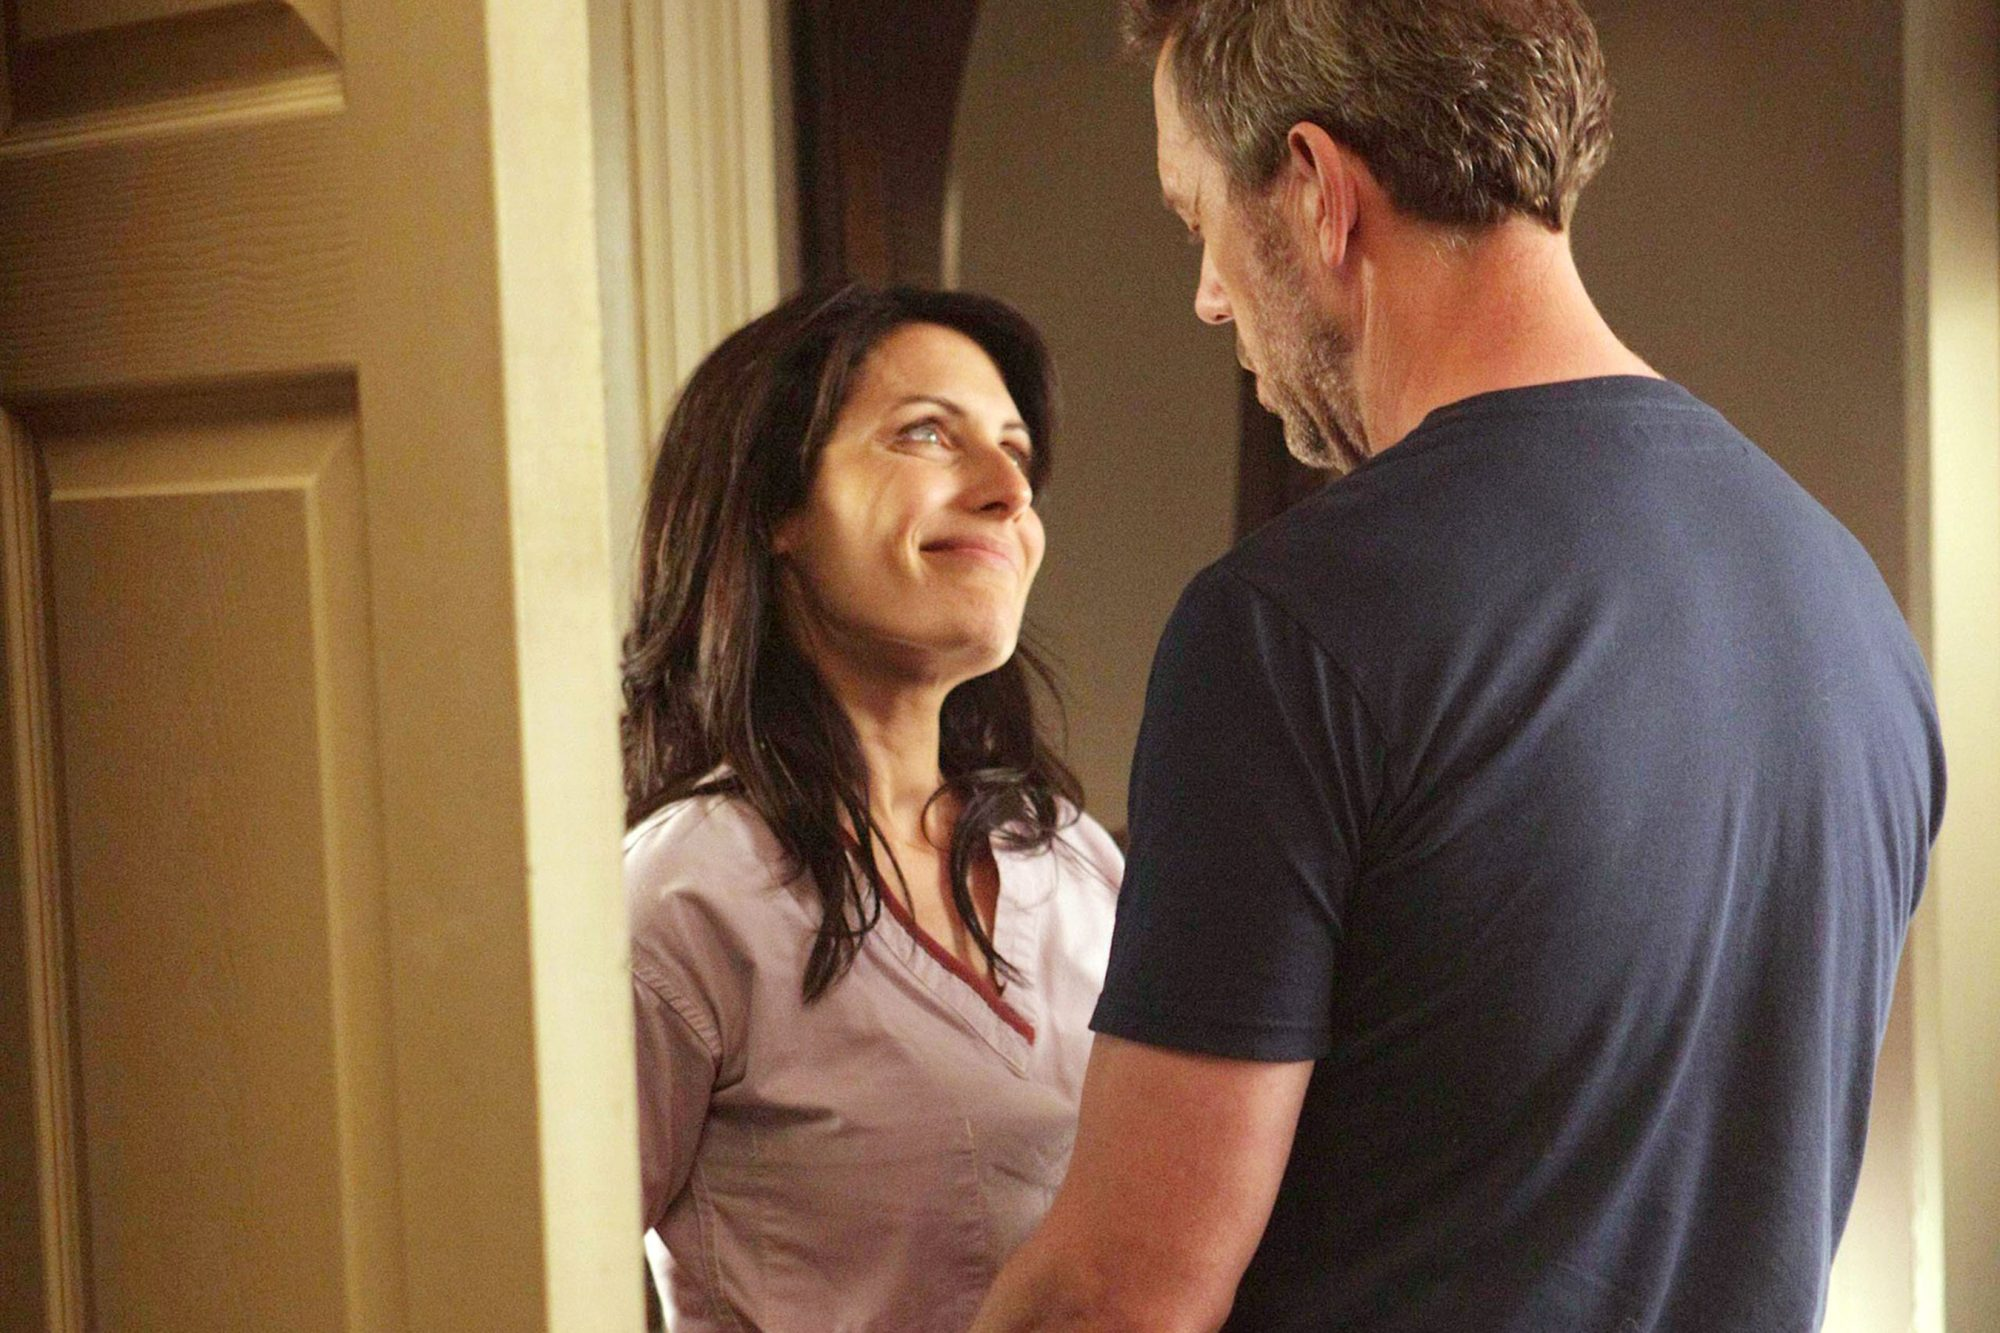 HOUSE, (from left): Lisa Edelstein, Hugh Laurie, 'Now What?', (Season 7, airing Sept. 20, 2010), 200